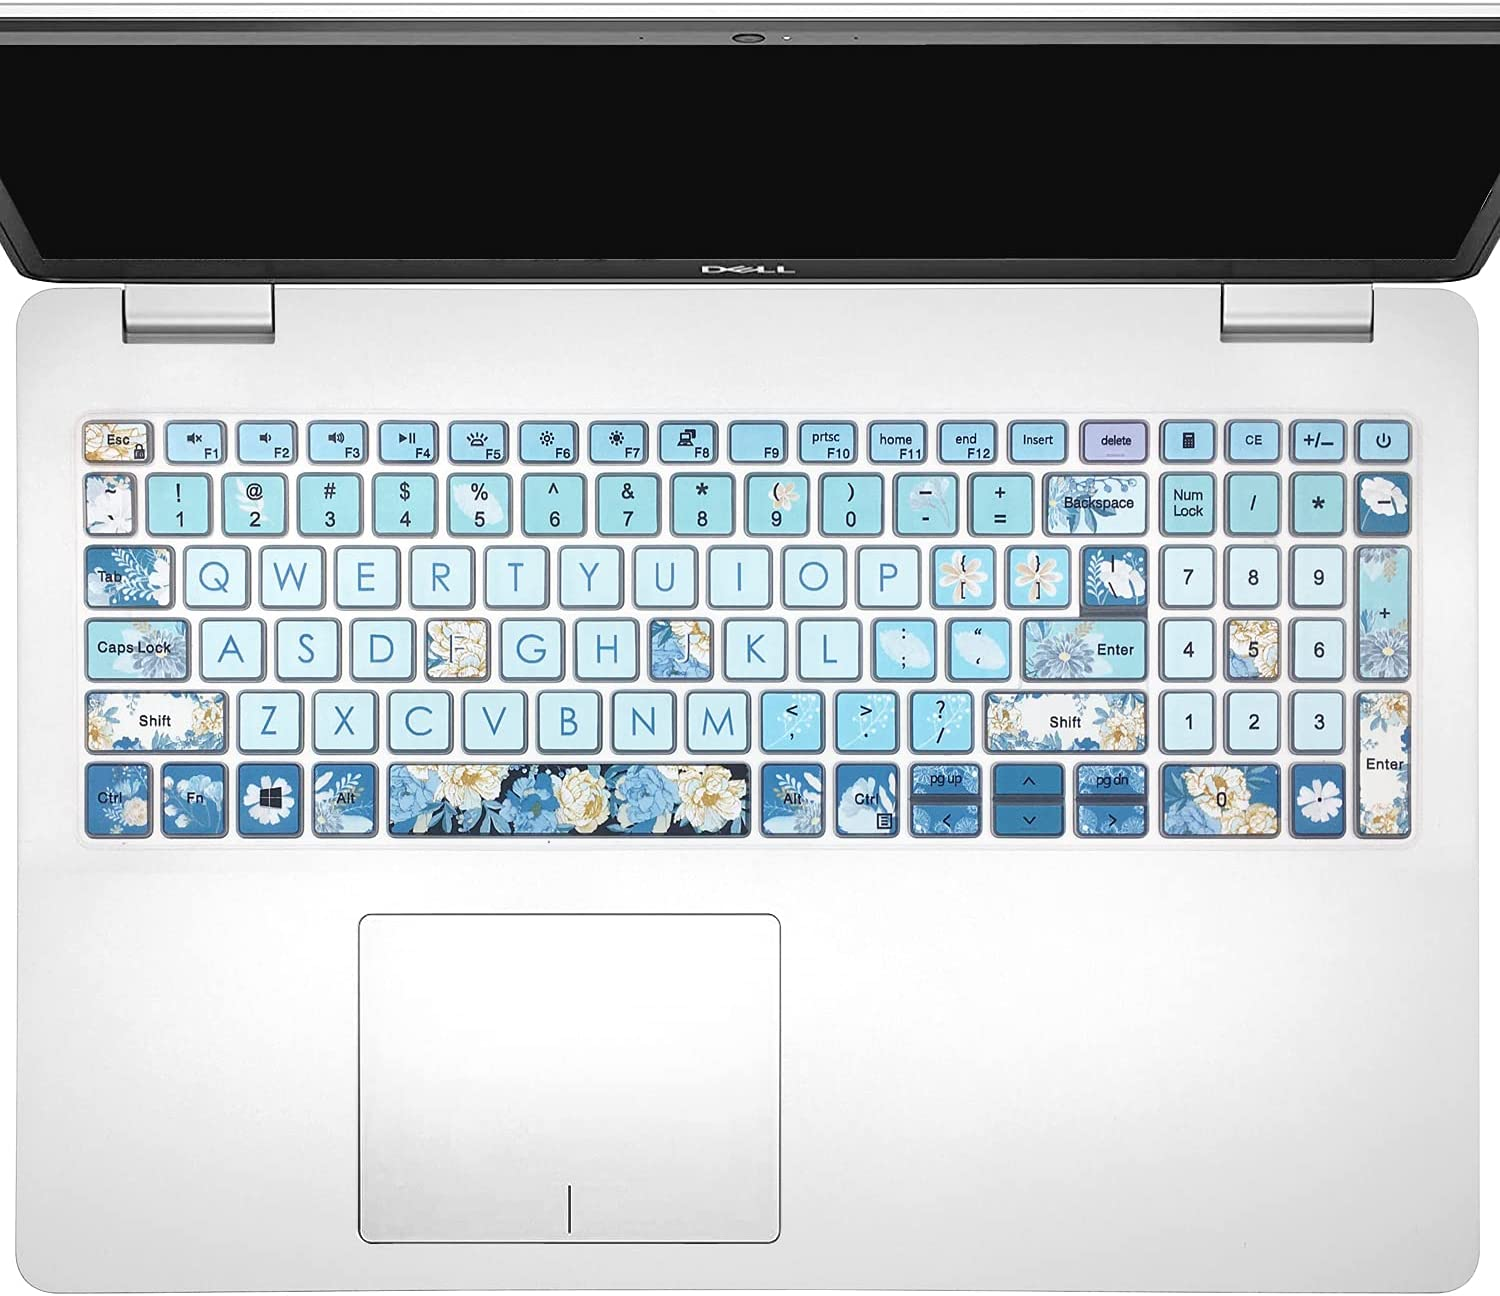 Keyboard Cover Skin for 2021 2020 2019 Dell Inspiron 15 5501 5502 5505 5508 5584 5590 5593 5598 15.6